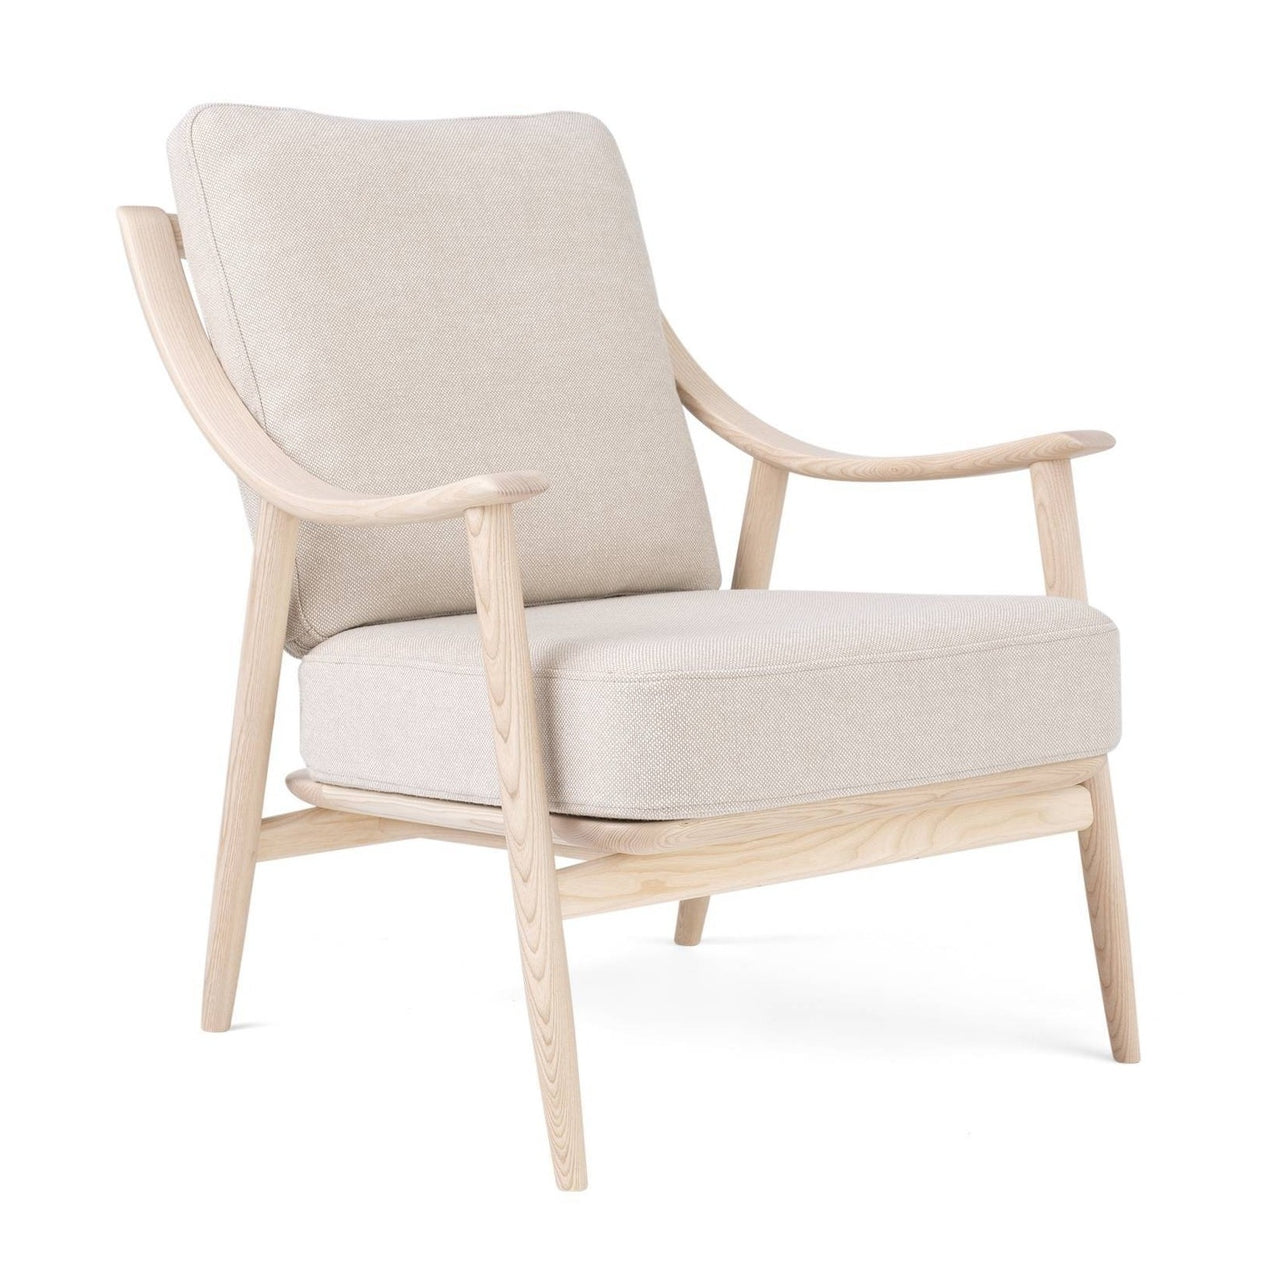 Marino Lounge Chair